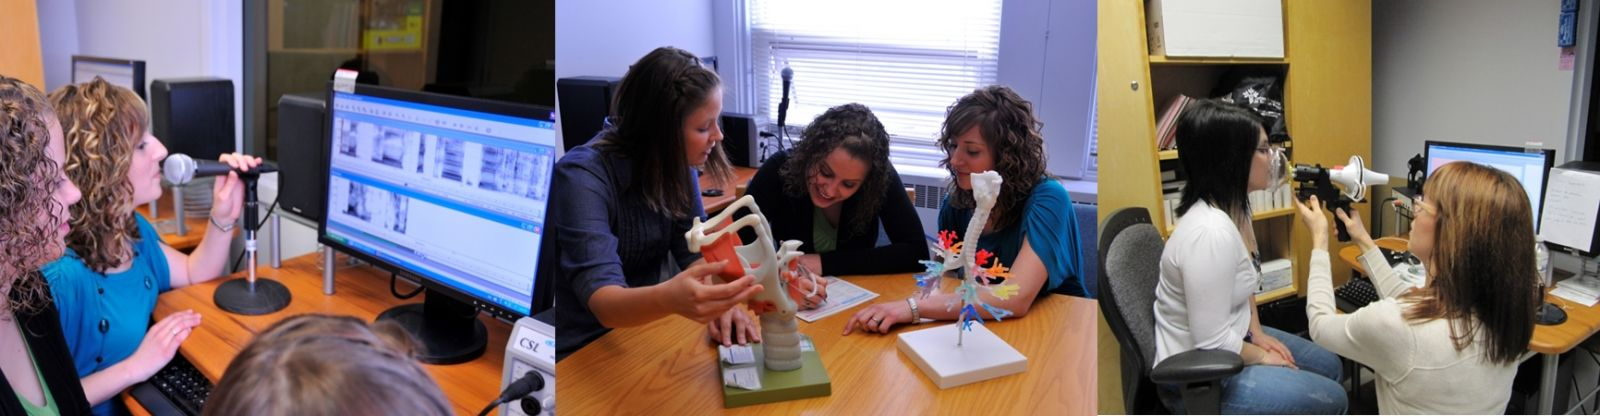 Students participating in a speech-language pathology class.